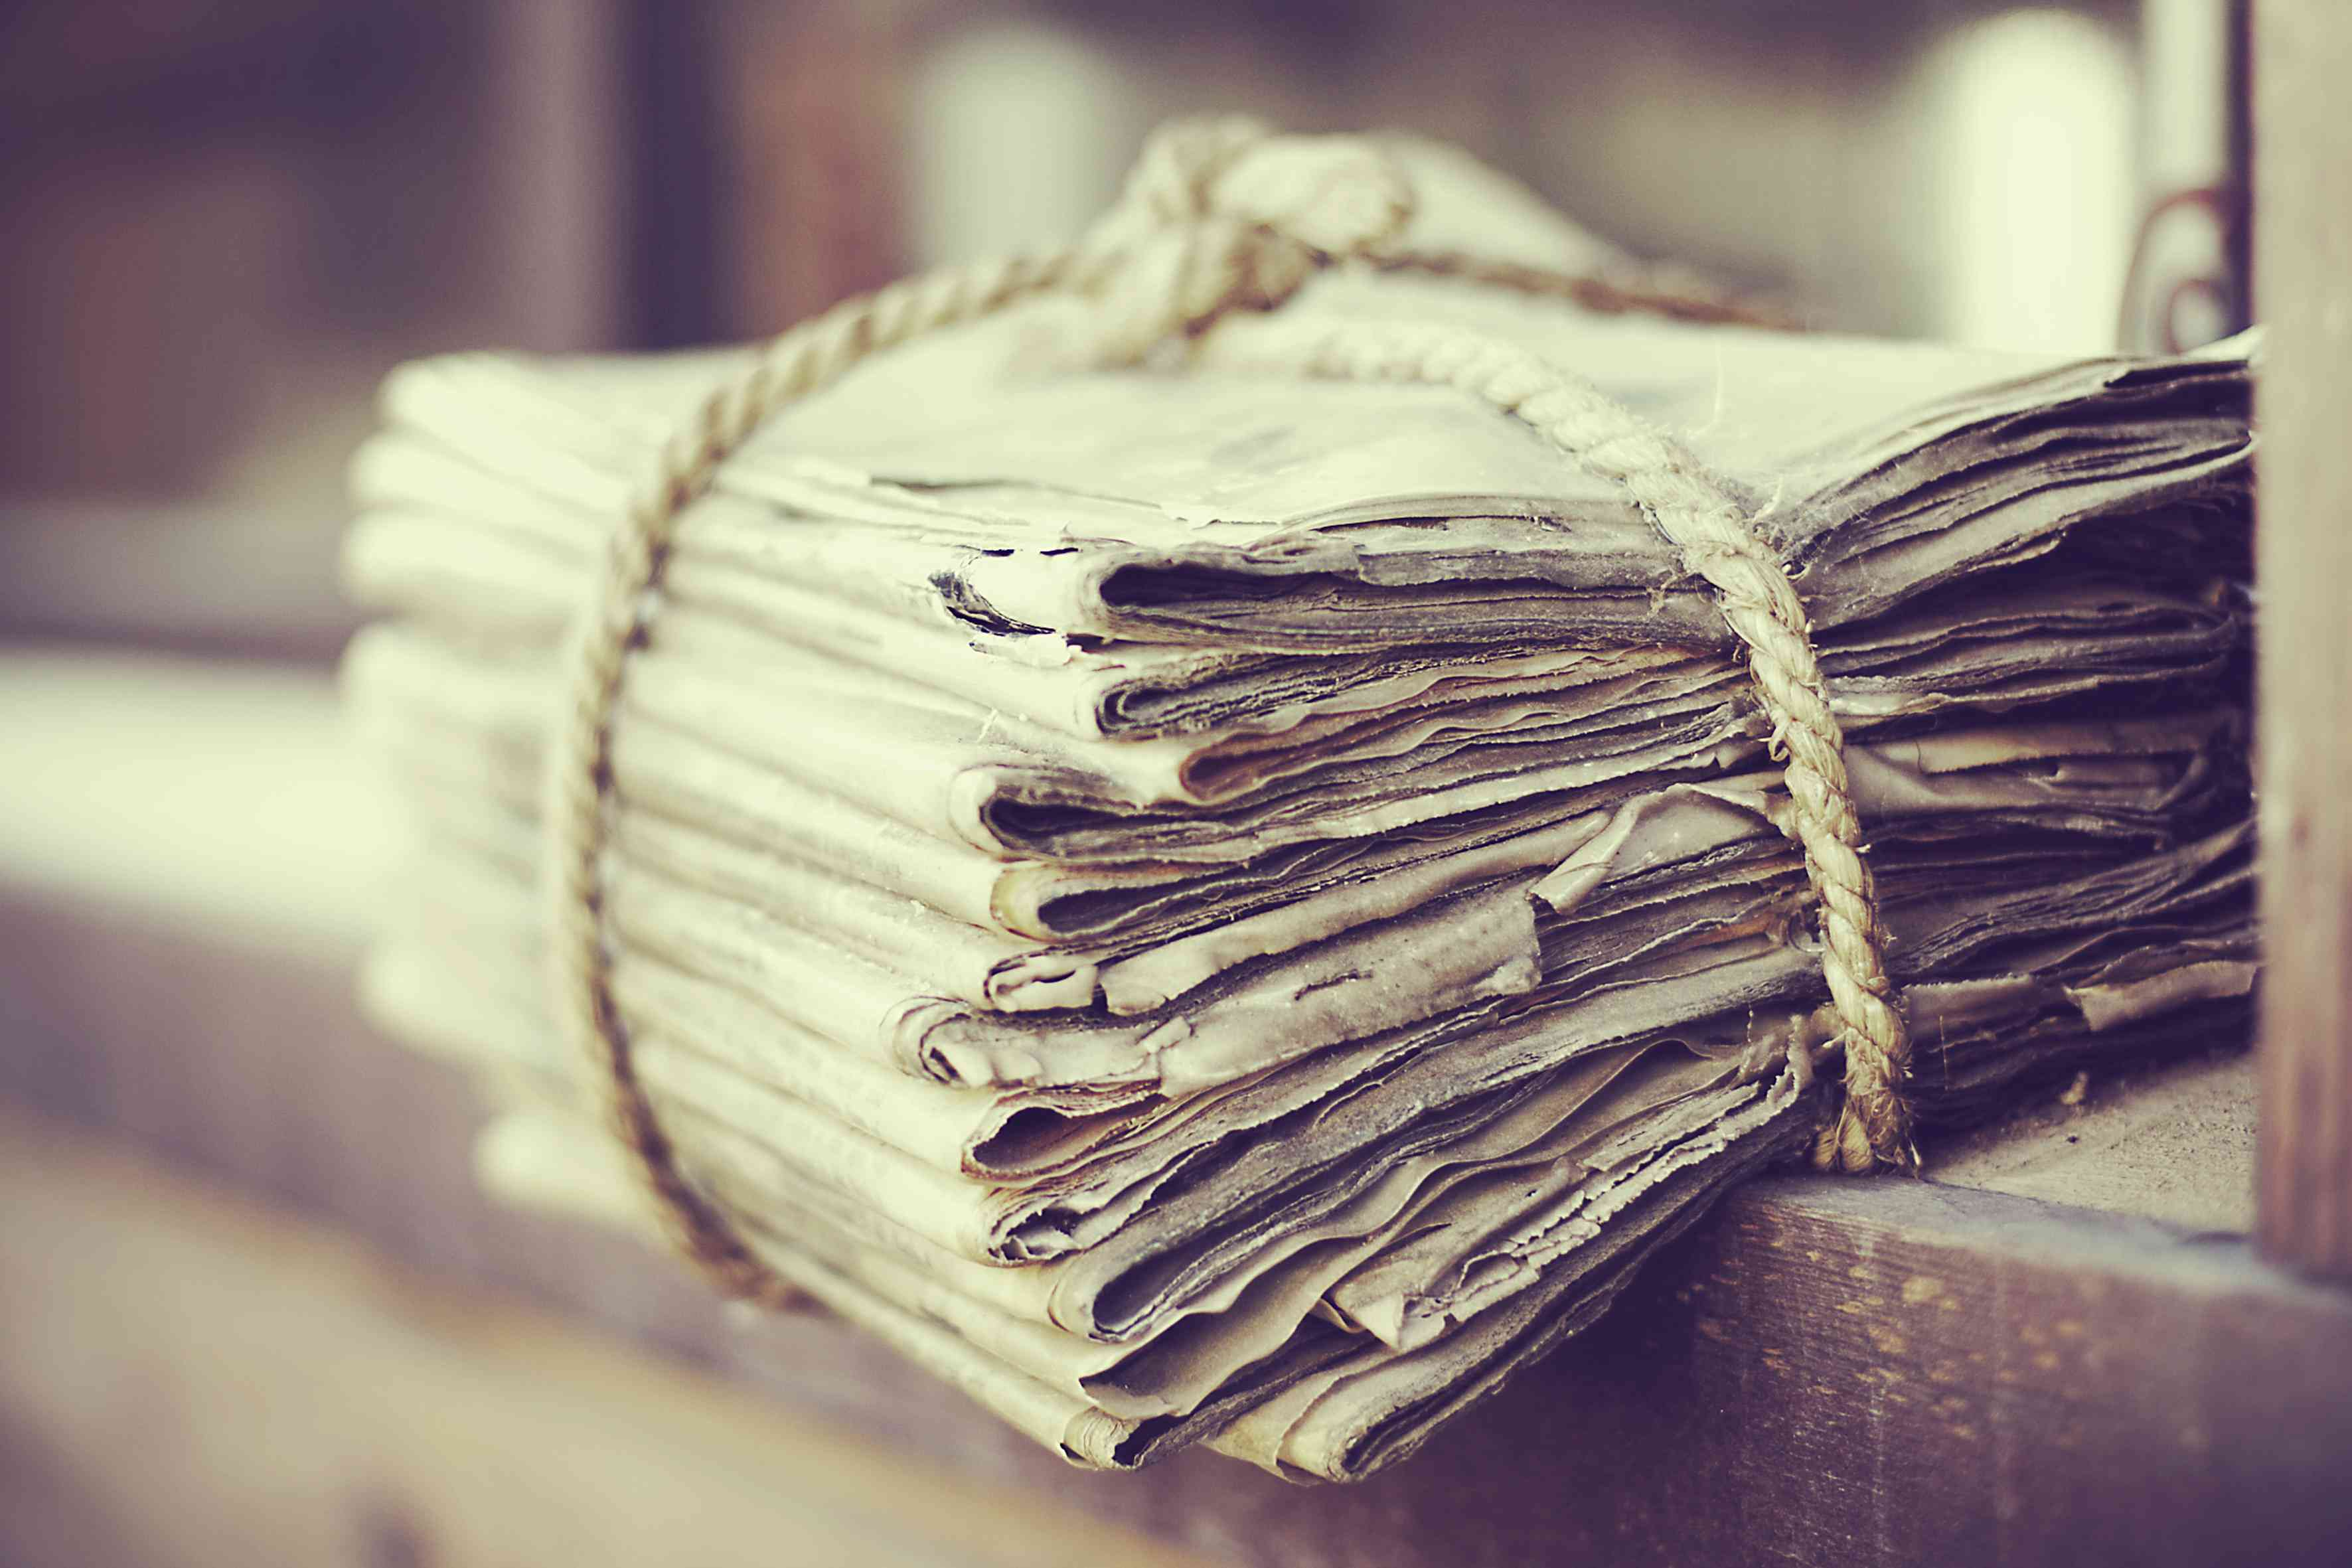 Select historical newspapers dating as early as 1738 can be accessed through an online subscription to Irish Newspaper Archives.